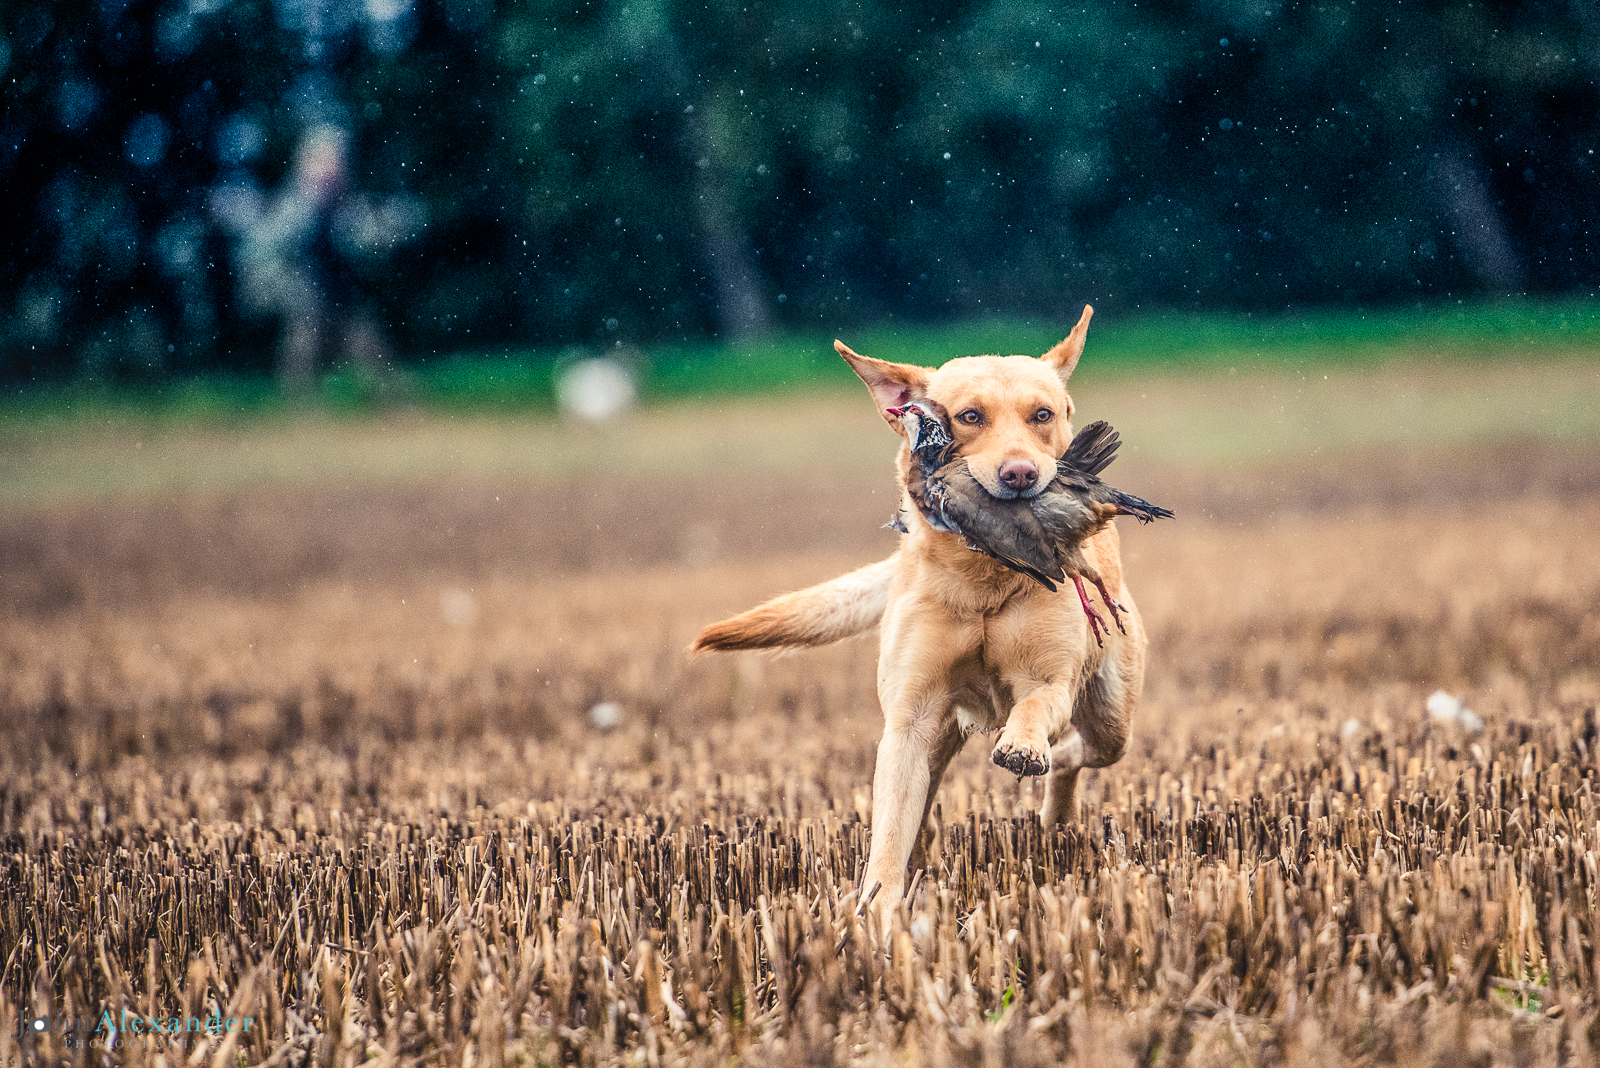 golden labrador retrieving partridge in the rain